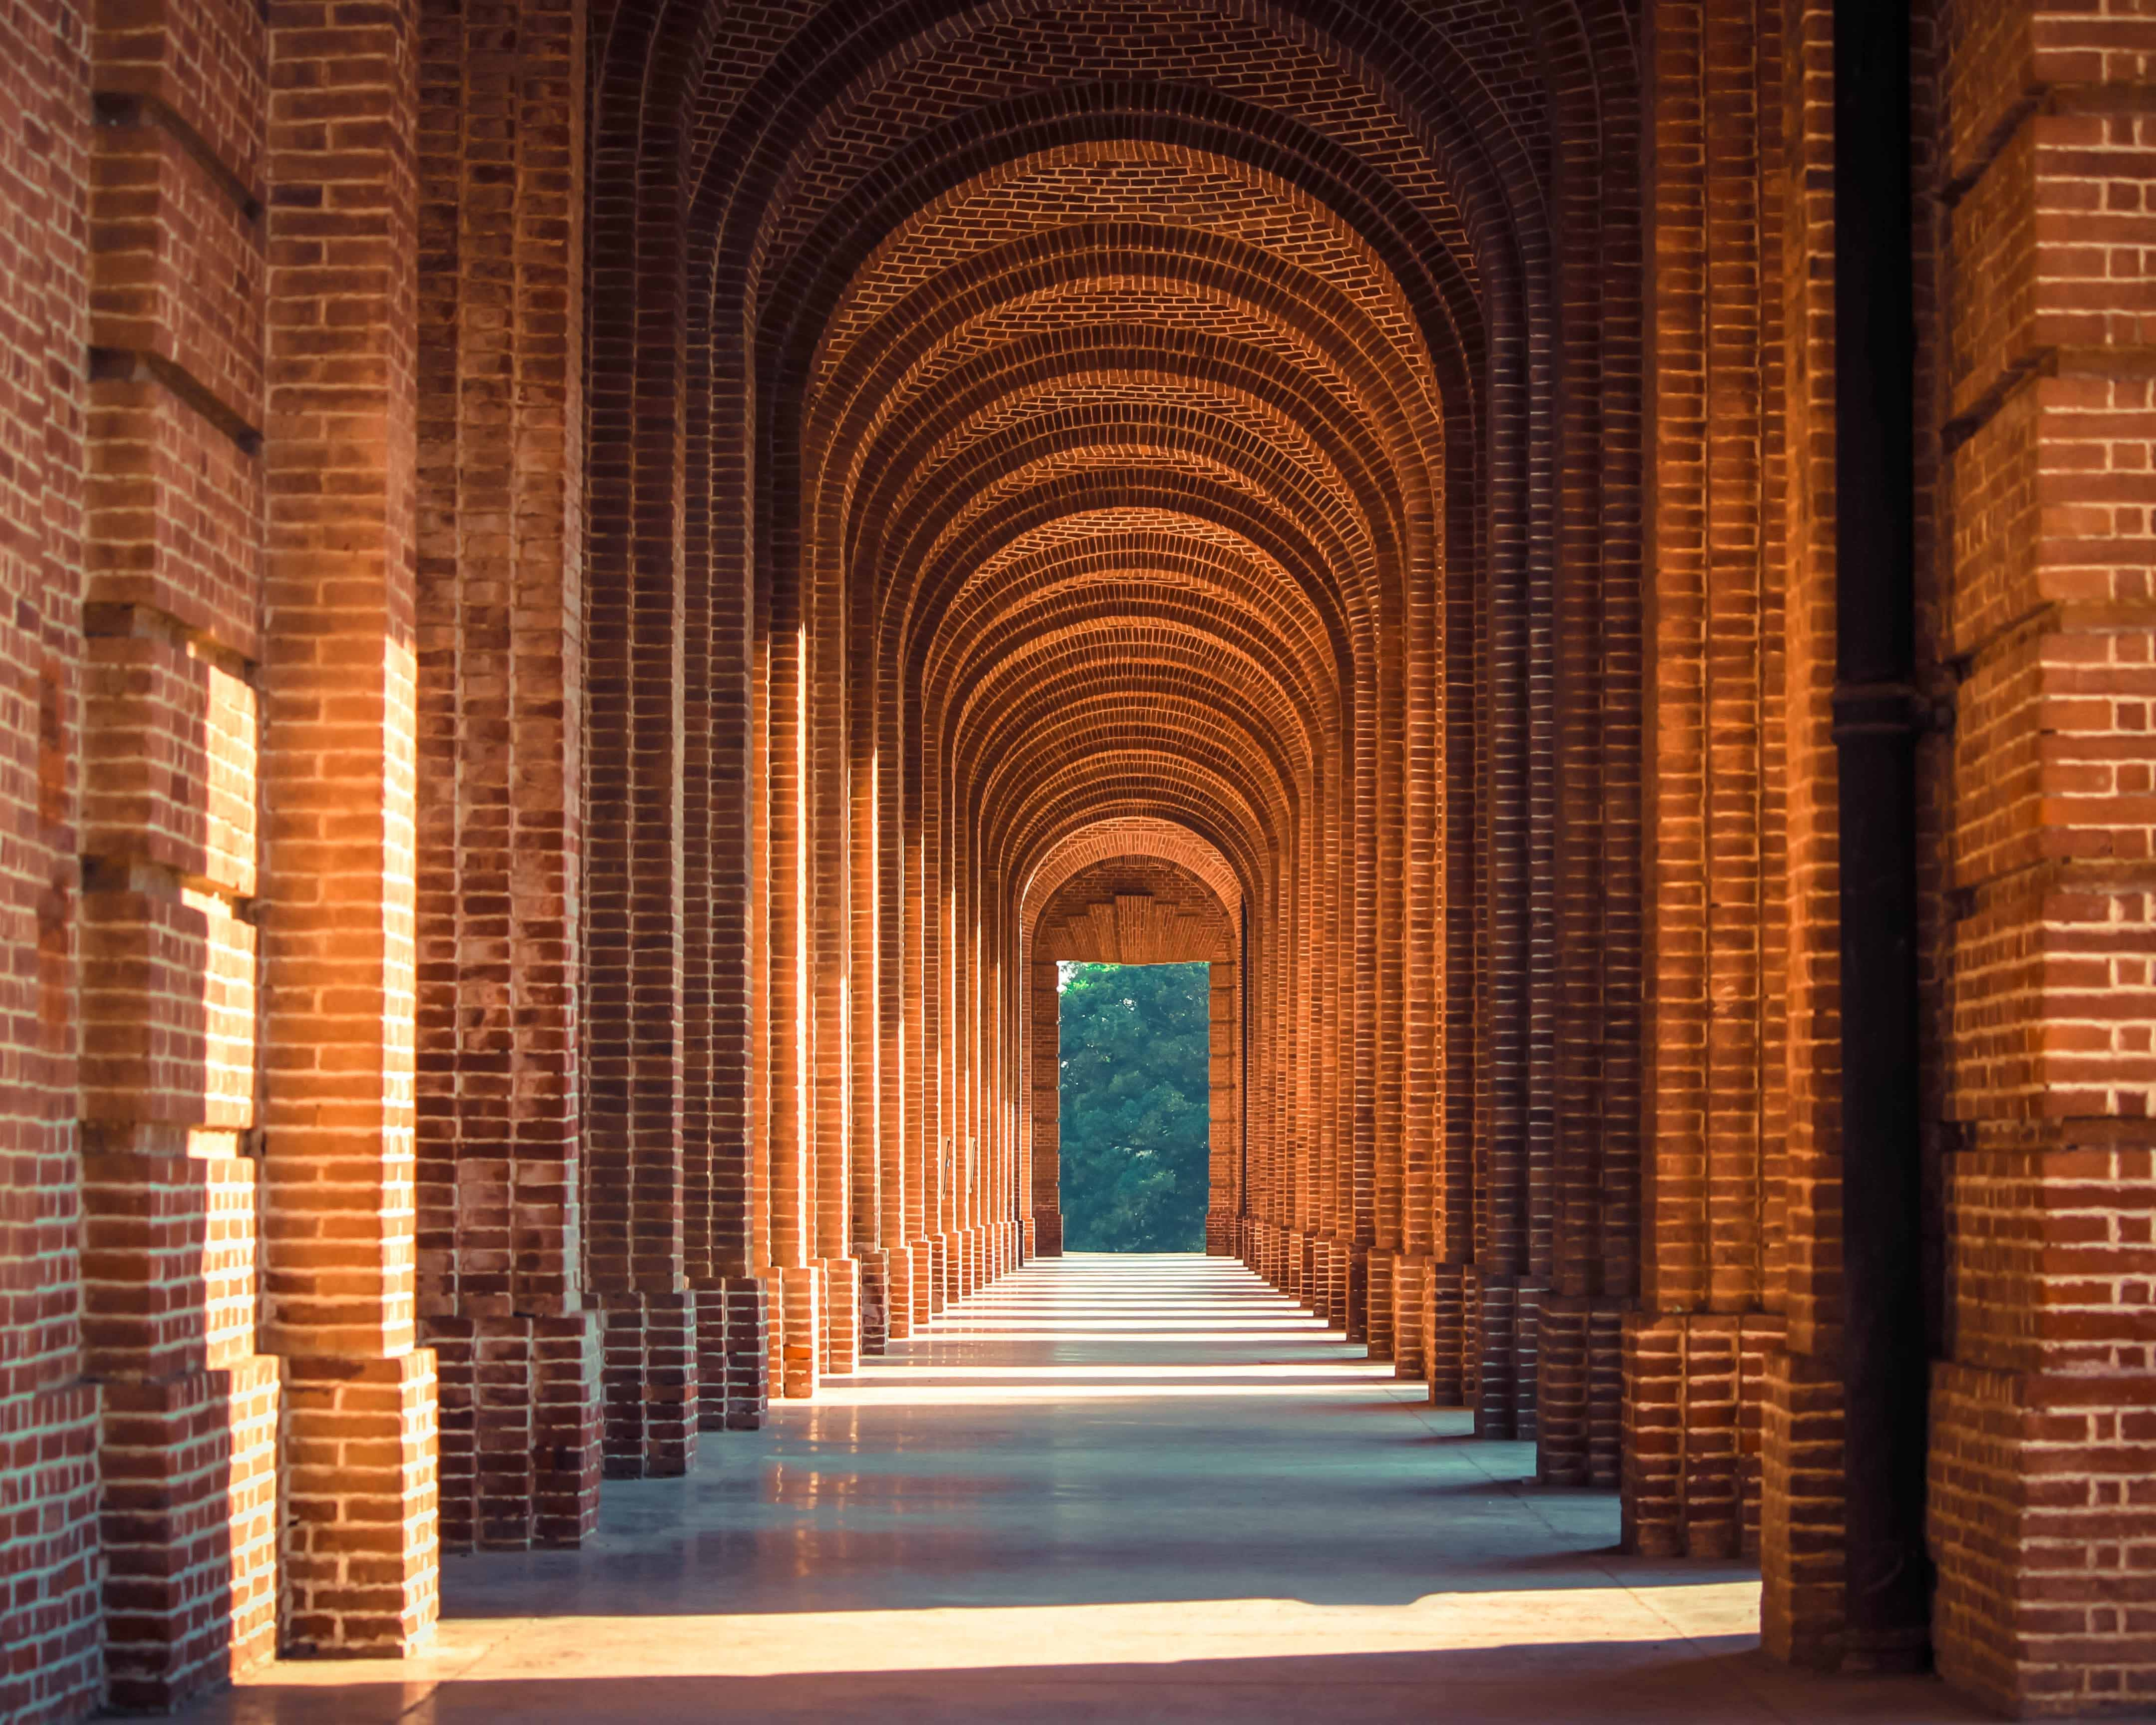 A corridor with a series of brick arches